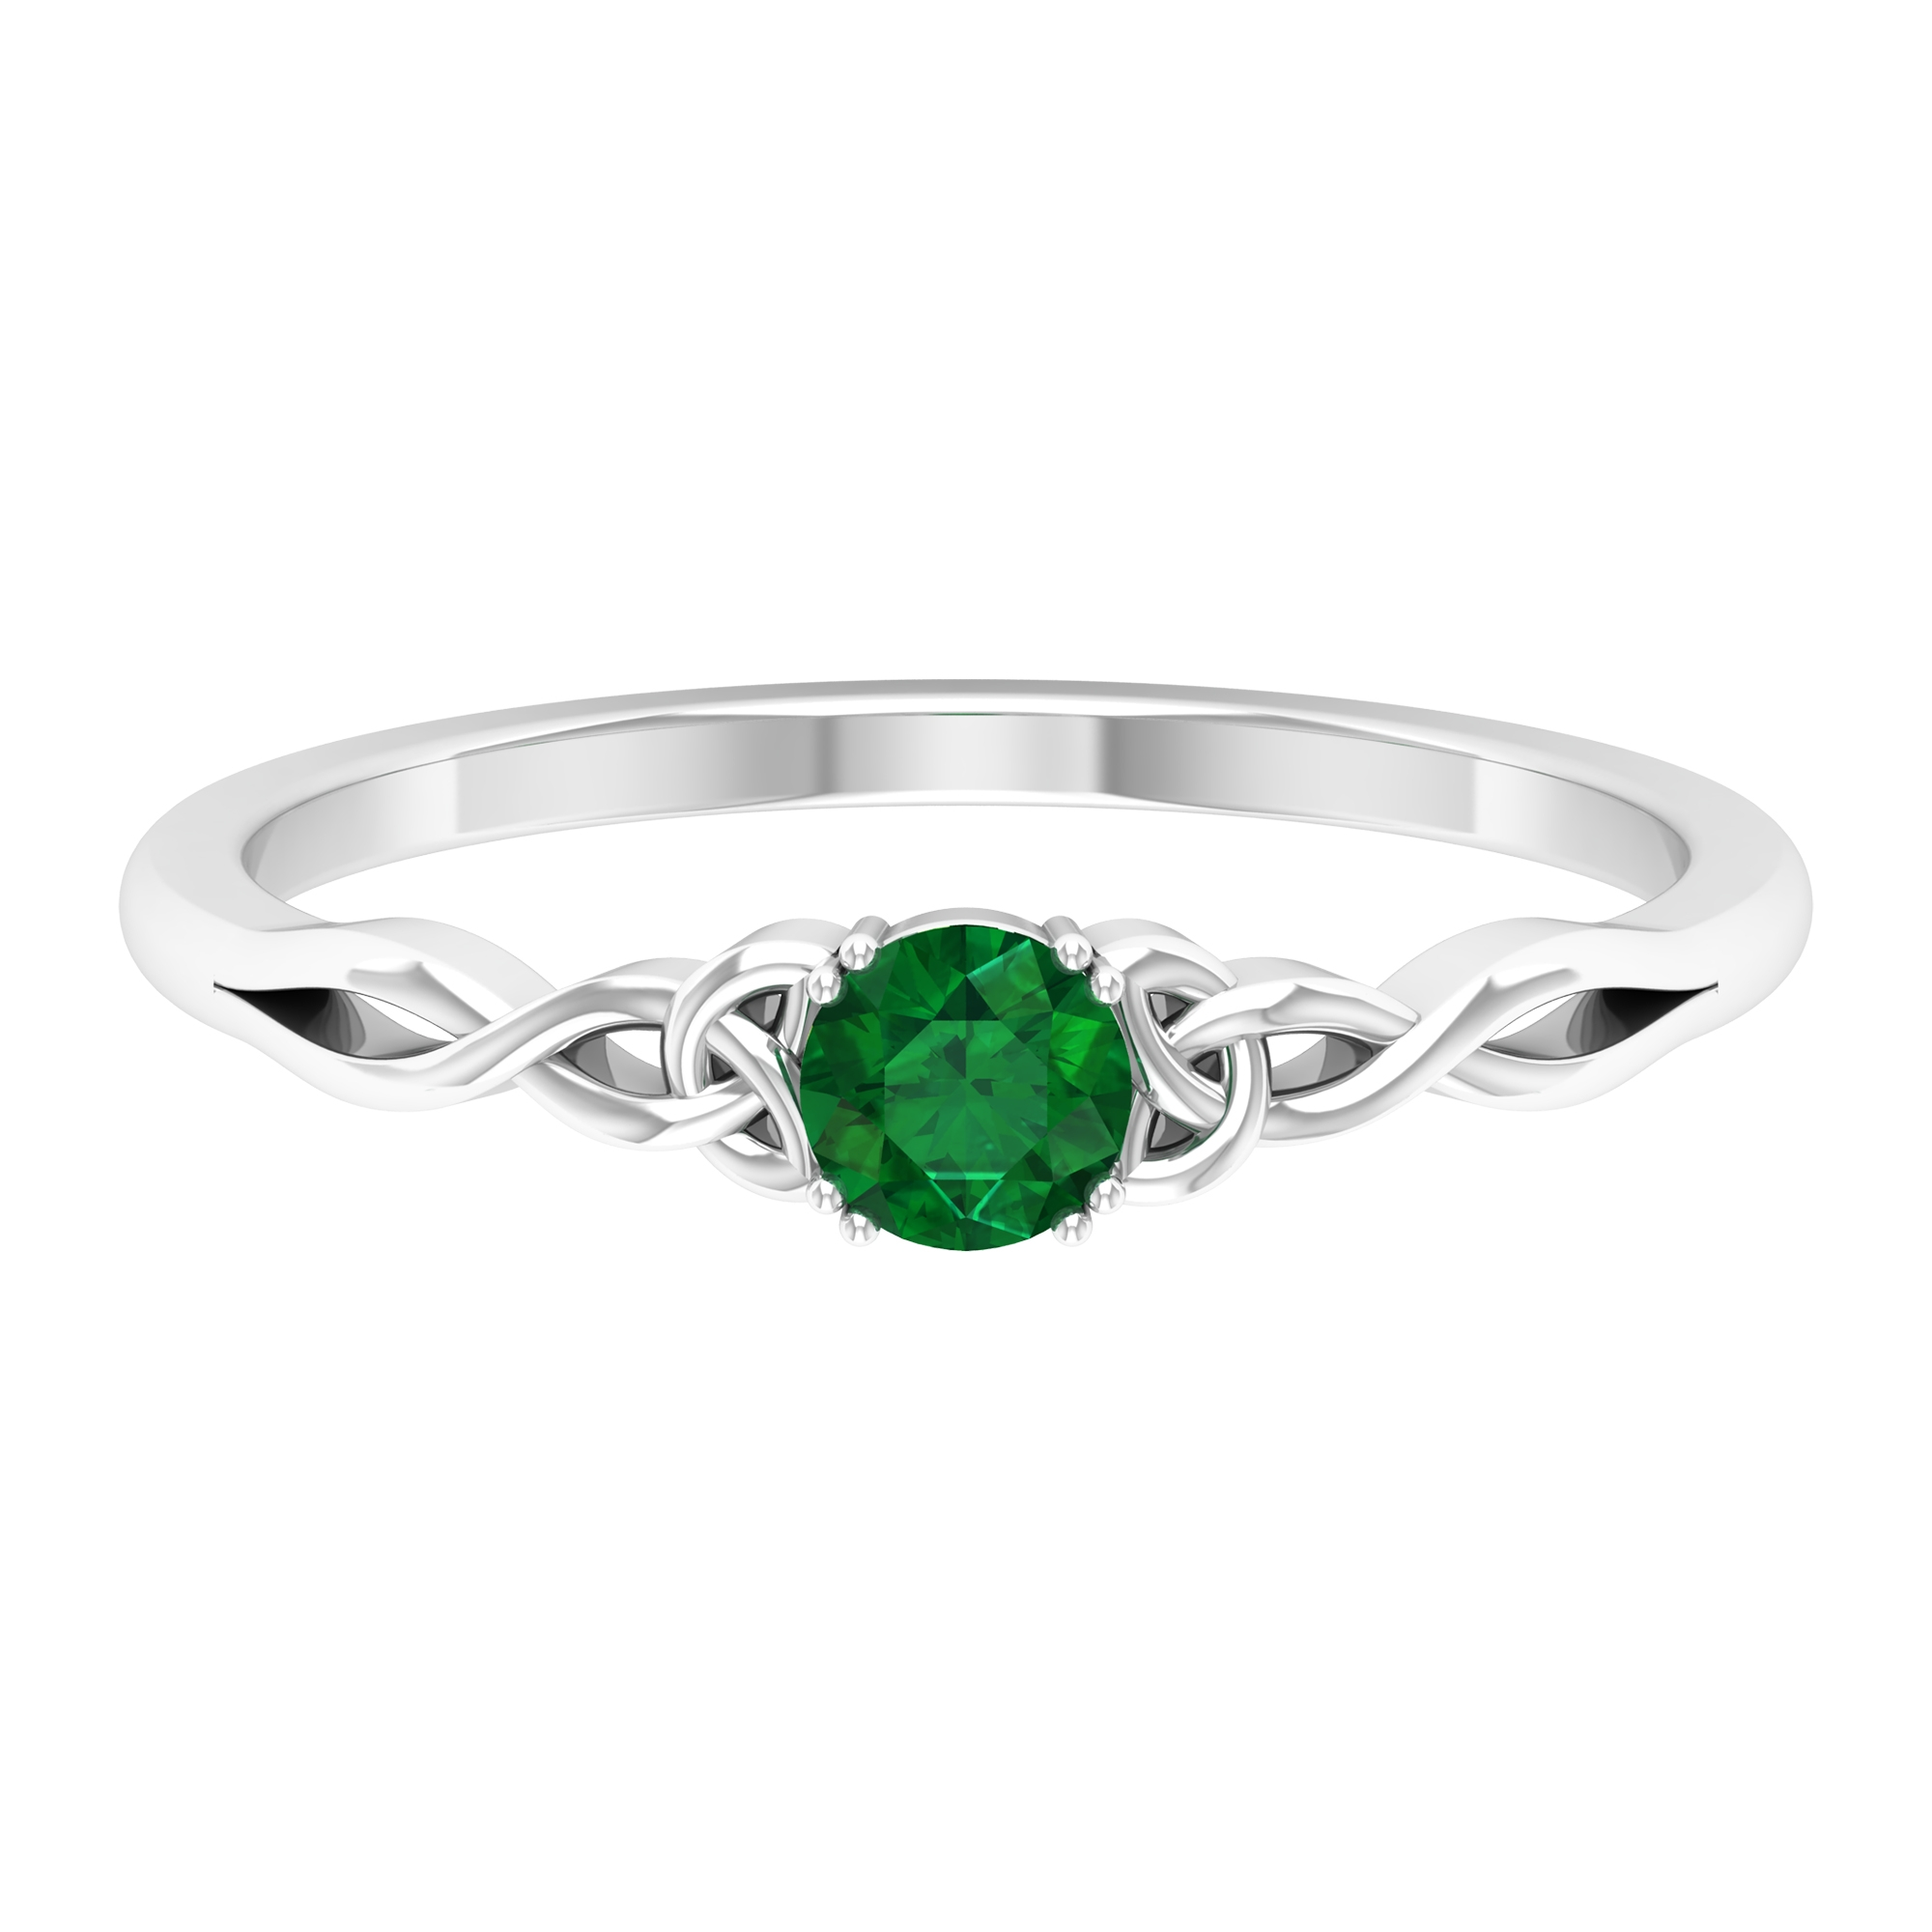 4 MM Round Cut Emerald Solitaire Ring in Double Prong Setting with Celtic Shank